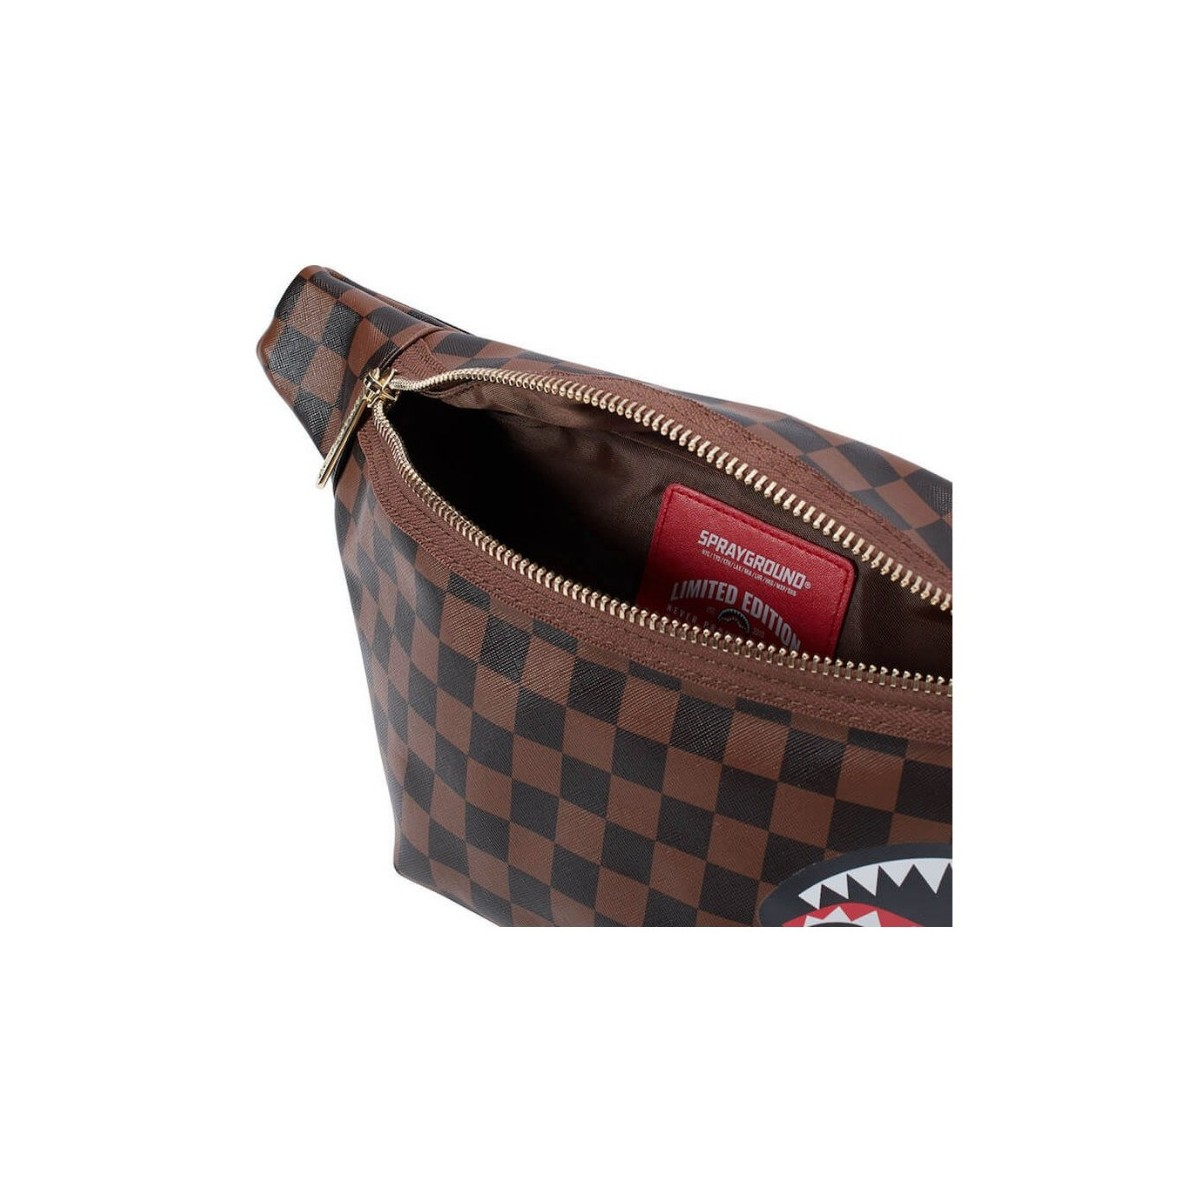 Zaino - Sharks in paris crossbody